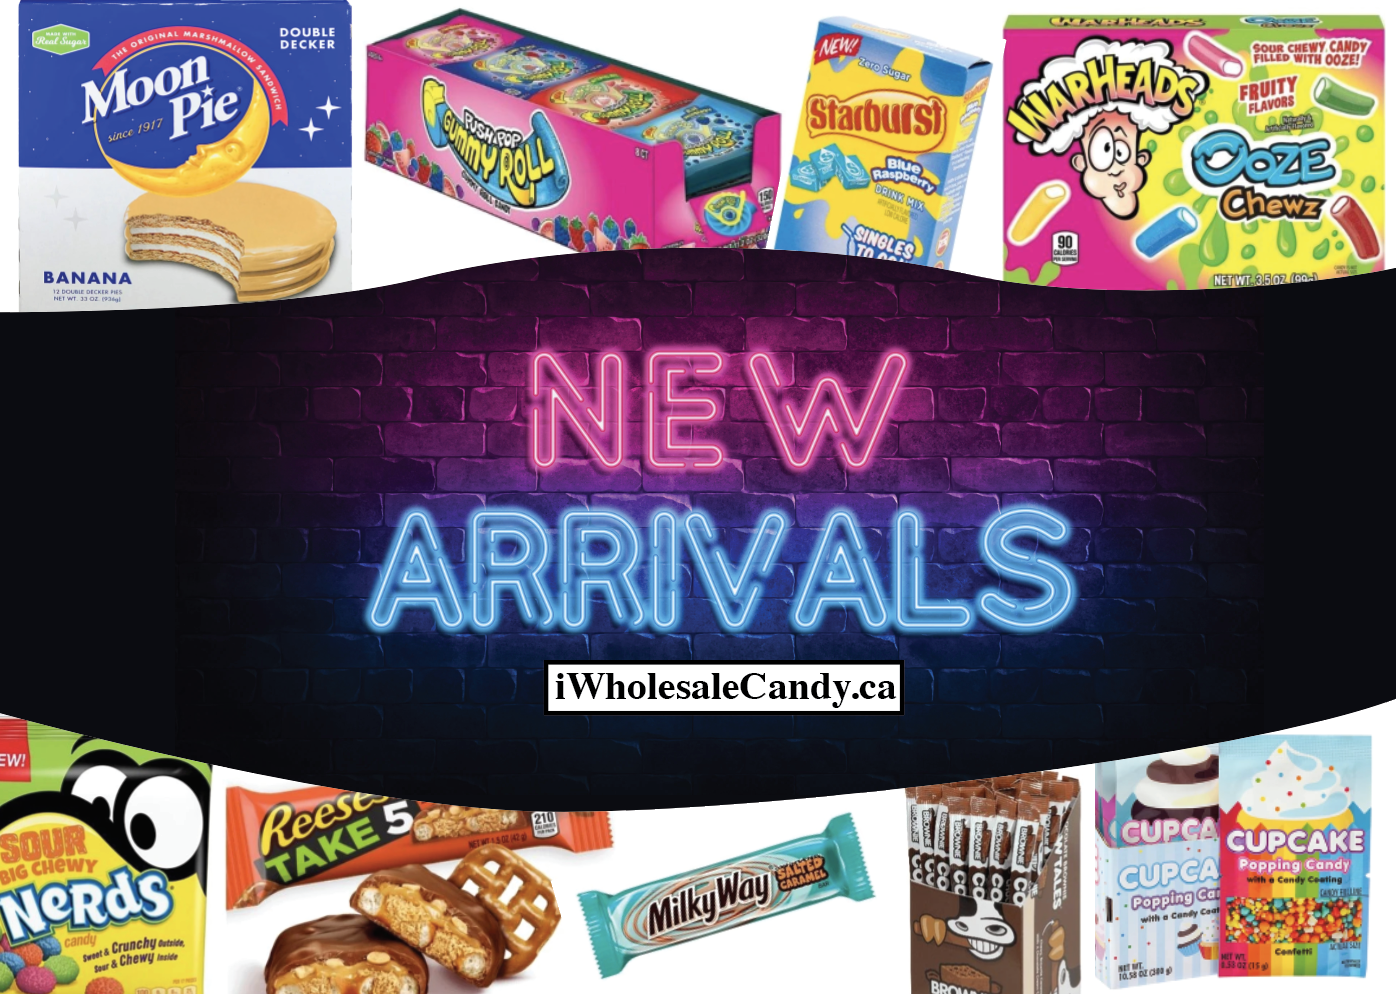 New year arrivals you MUST carry!